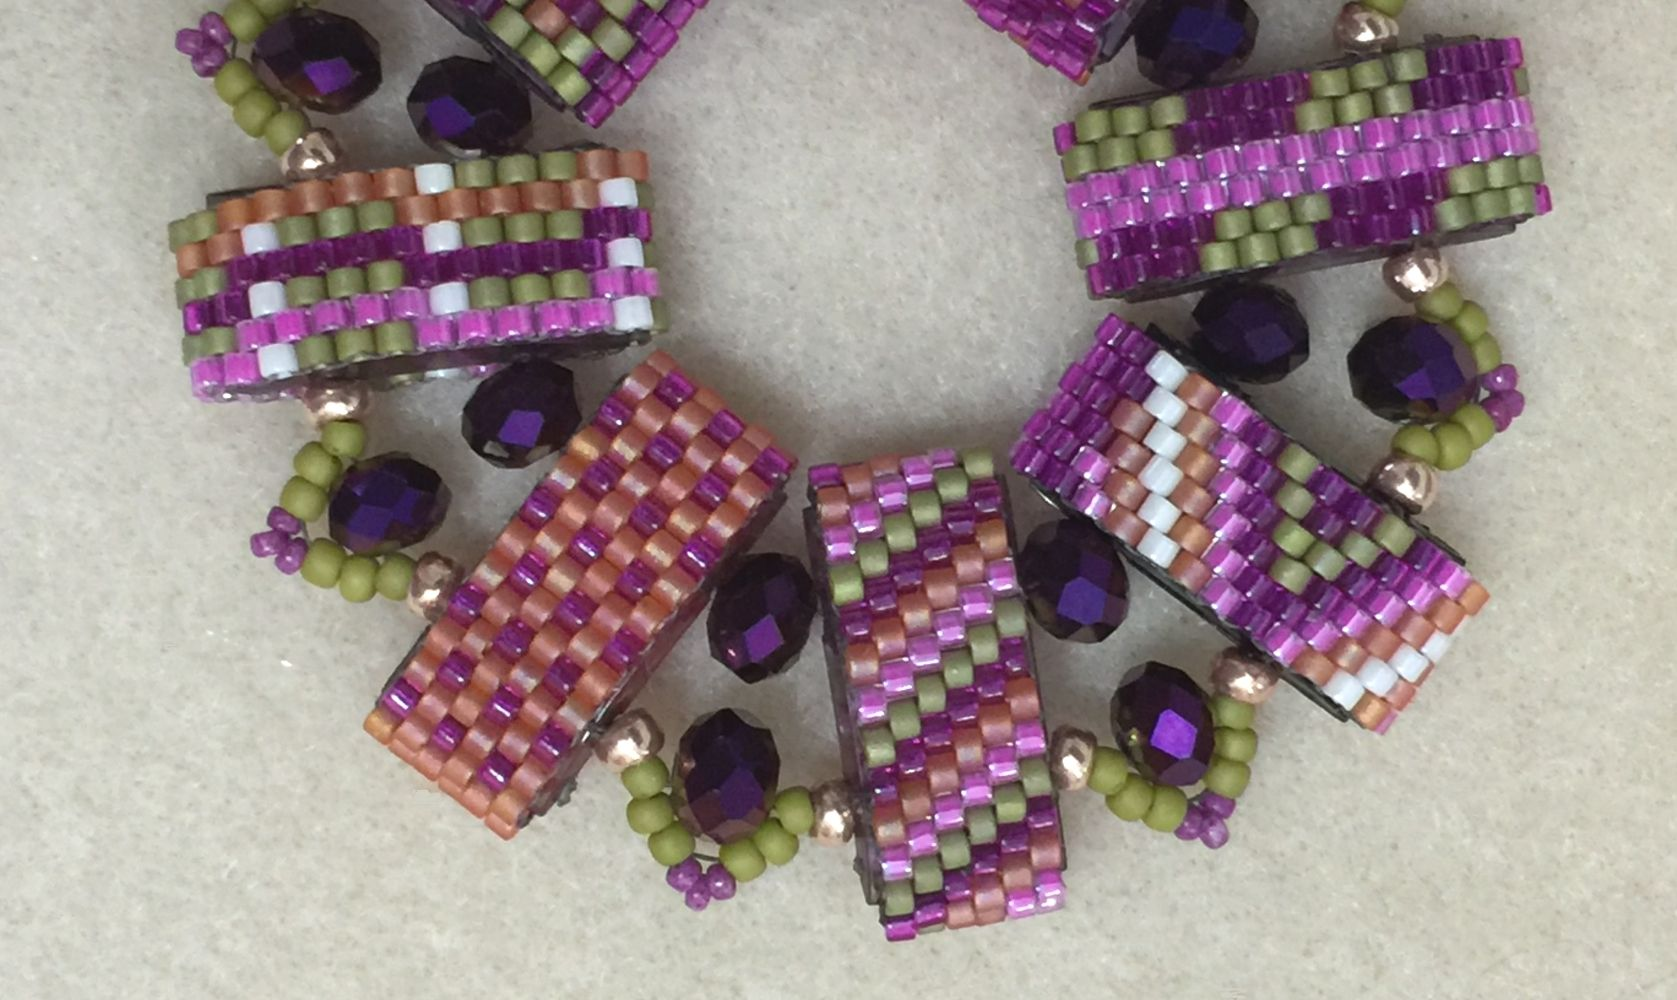 Fun with Carrier Beads | Peyote carrier beads | Pinterest ...